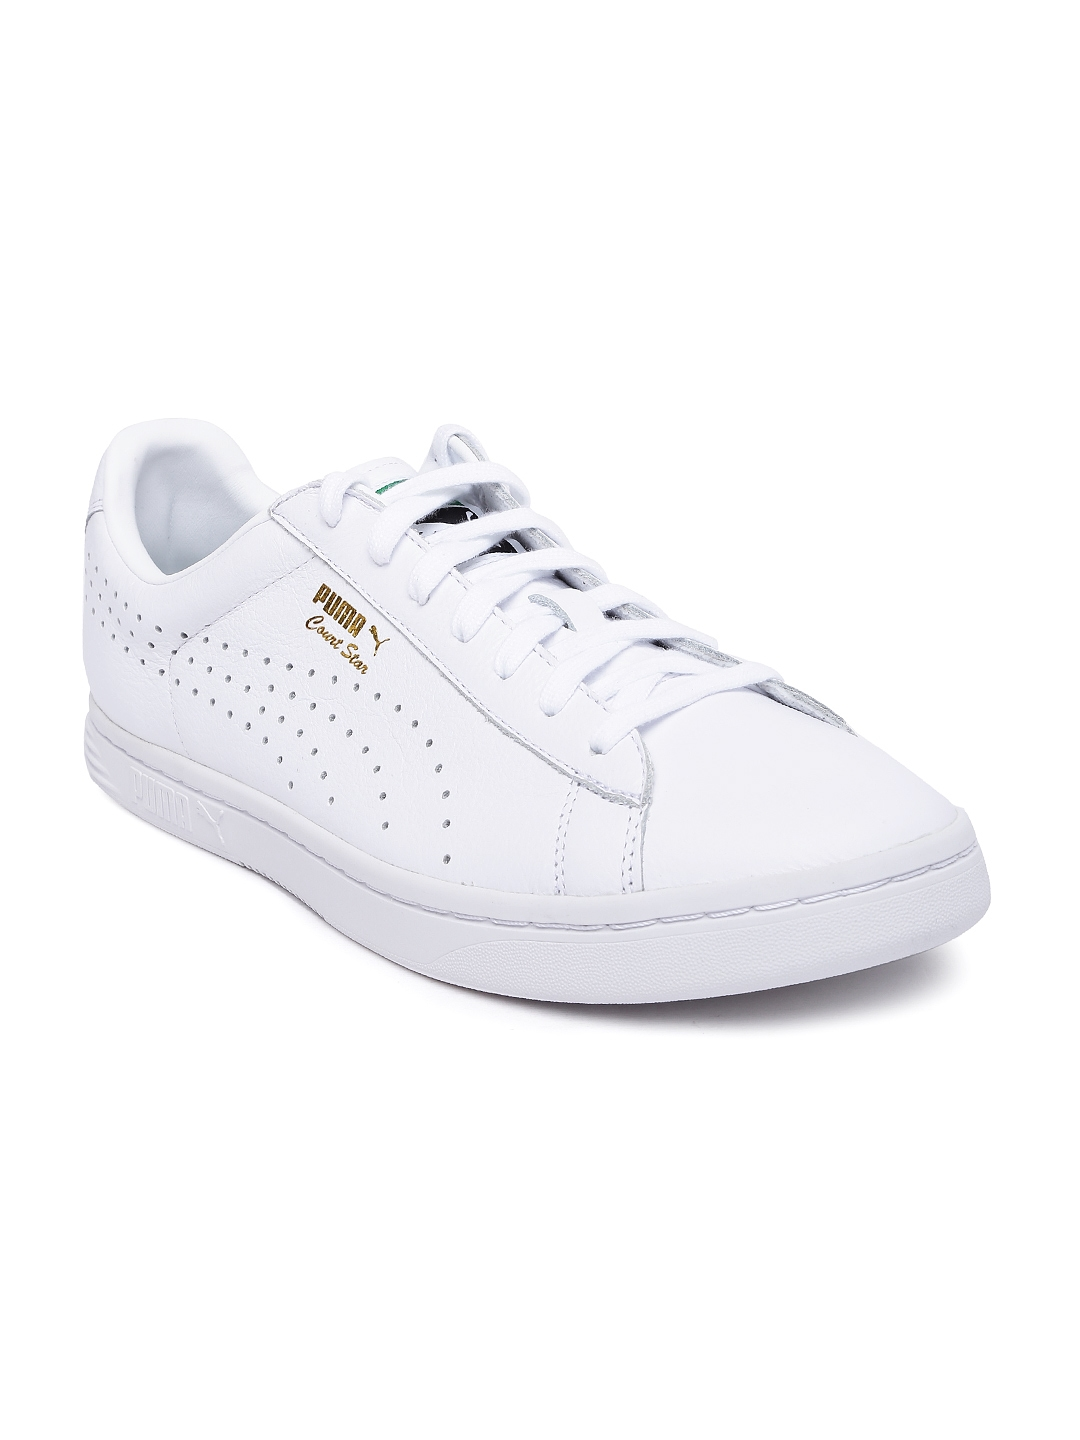 Buy PUMA Men White Leather Court Star NM Sneakers - Casual Shoes for ... 3fbcd58d1